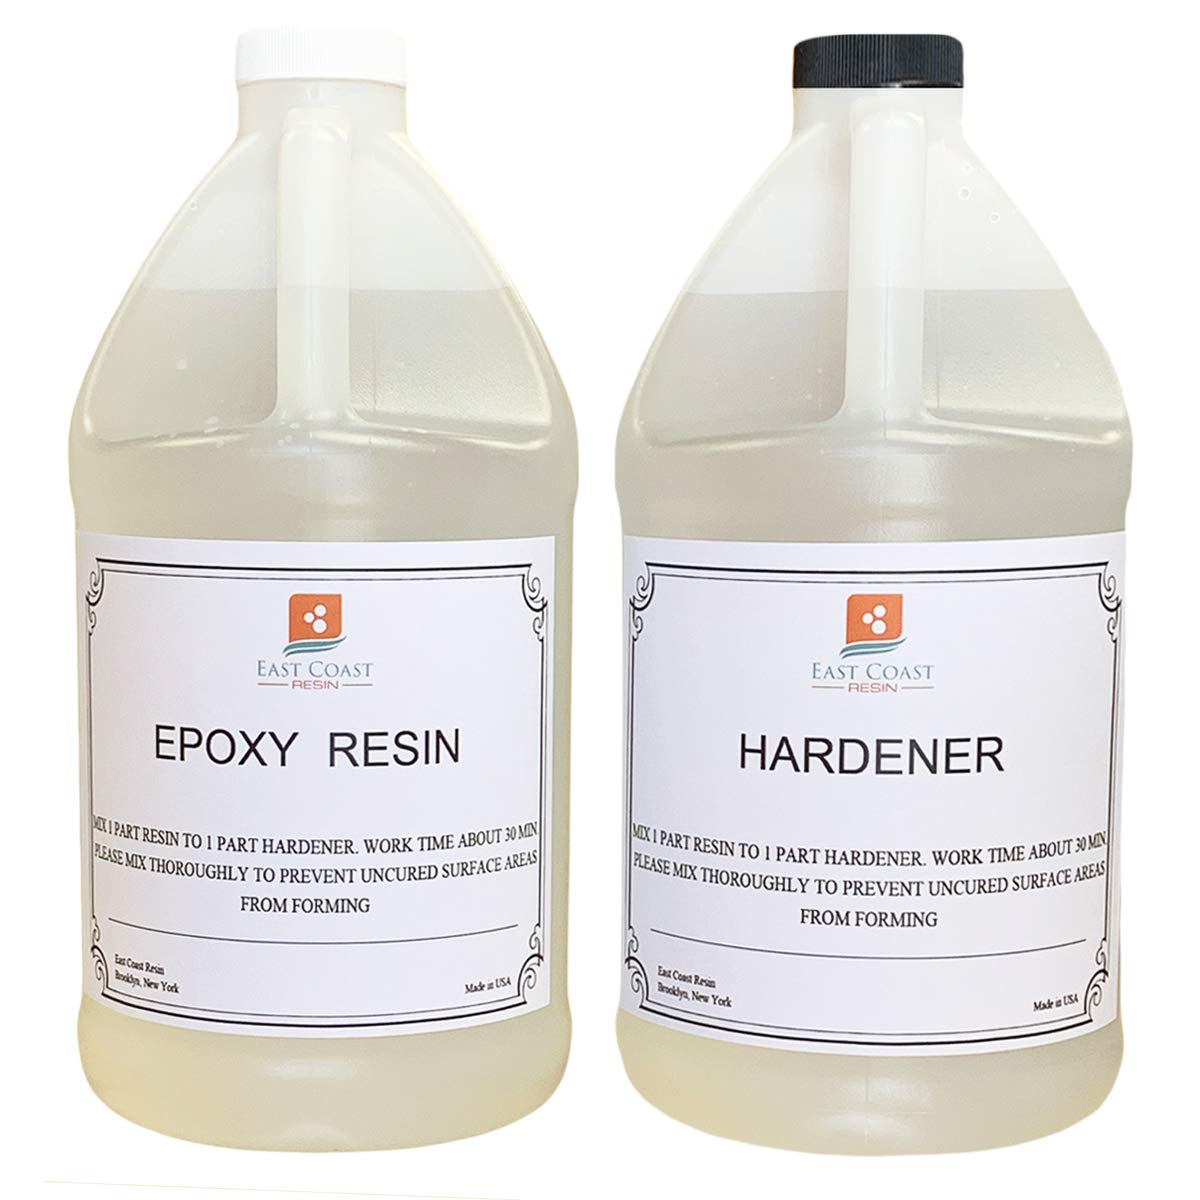 EPOXY Resin 1 Gallon Kit. (General Purpose) for Super Gloss Coating and TABLETOPS by East Coast Resin